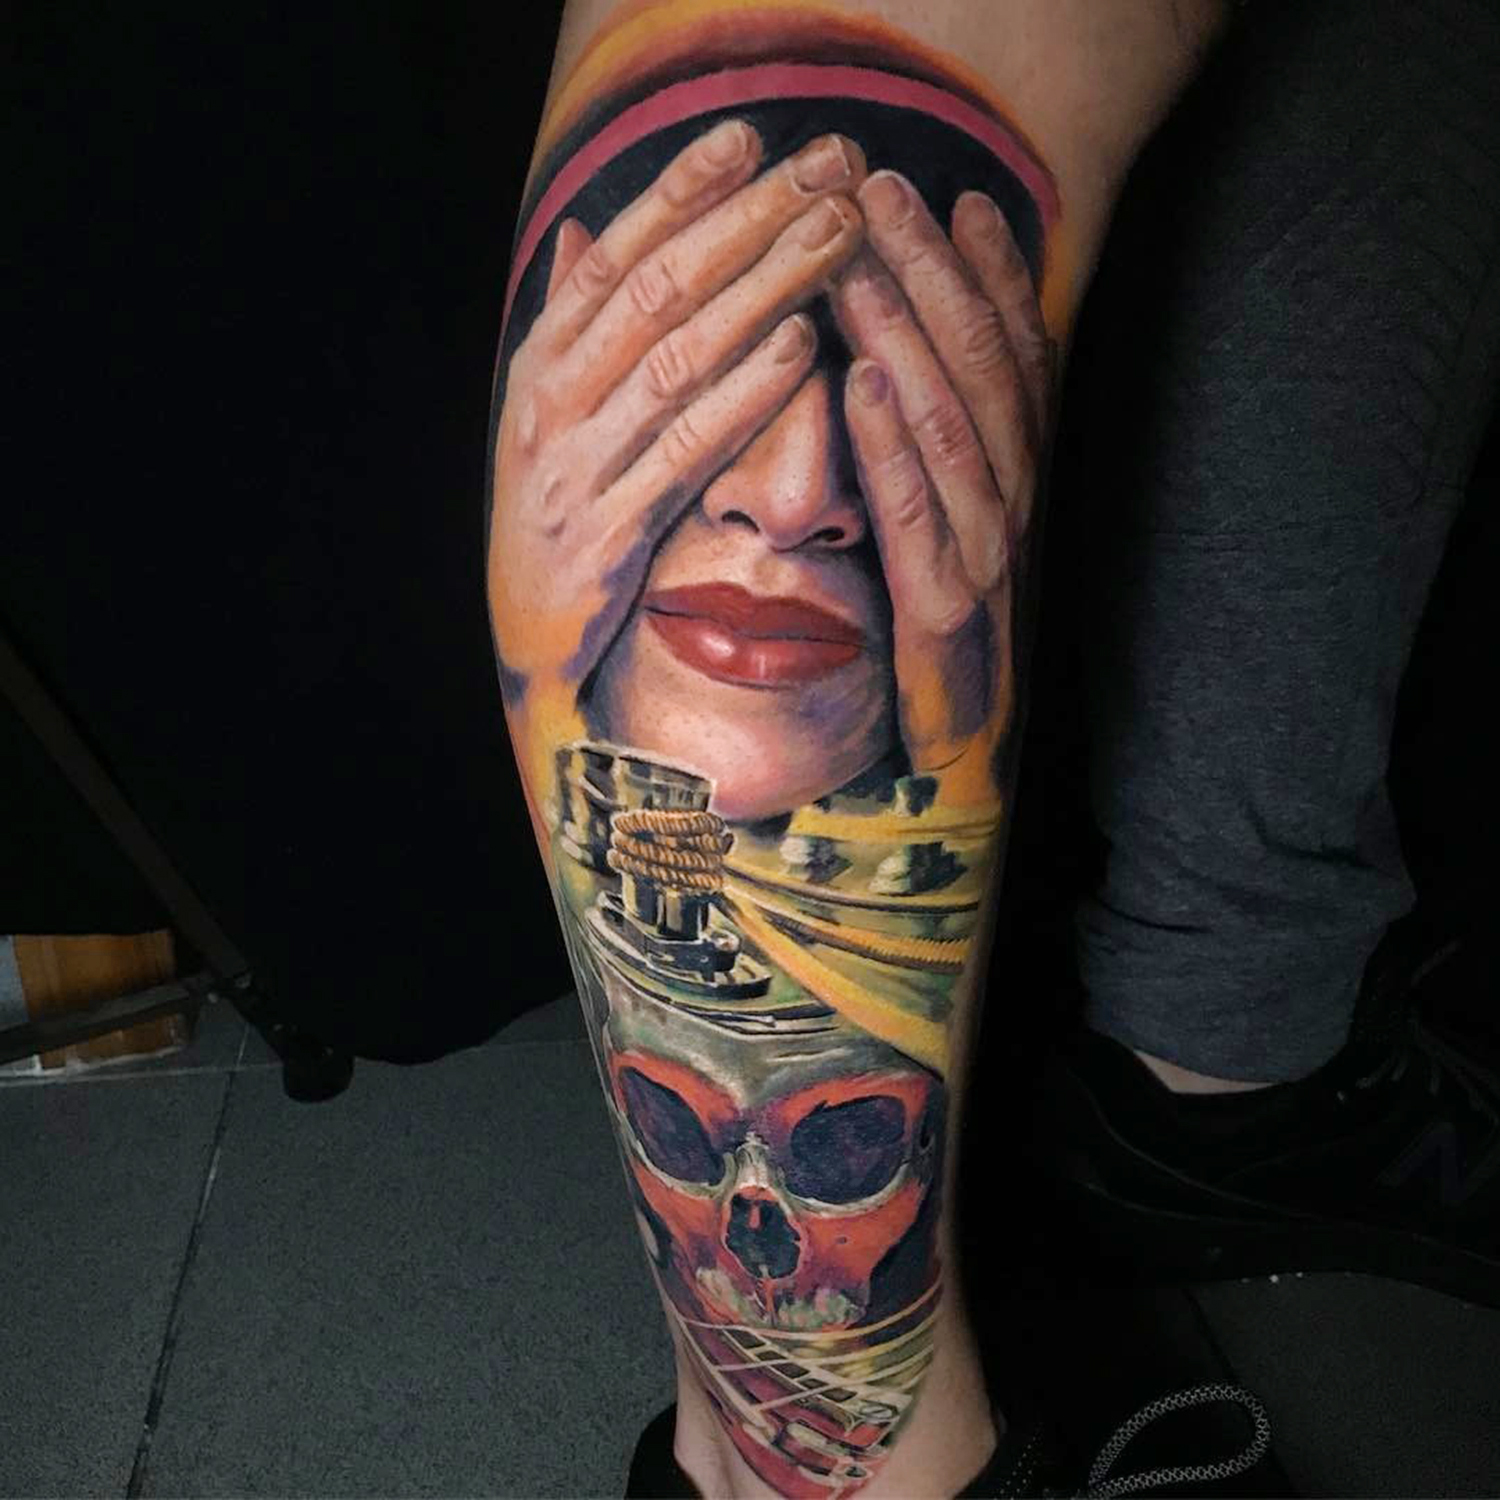 hiding face, portrait tattoo